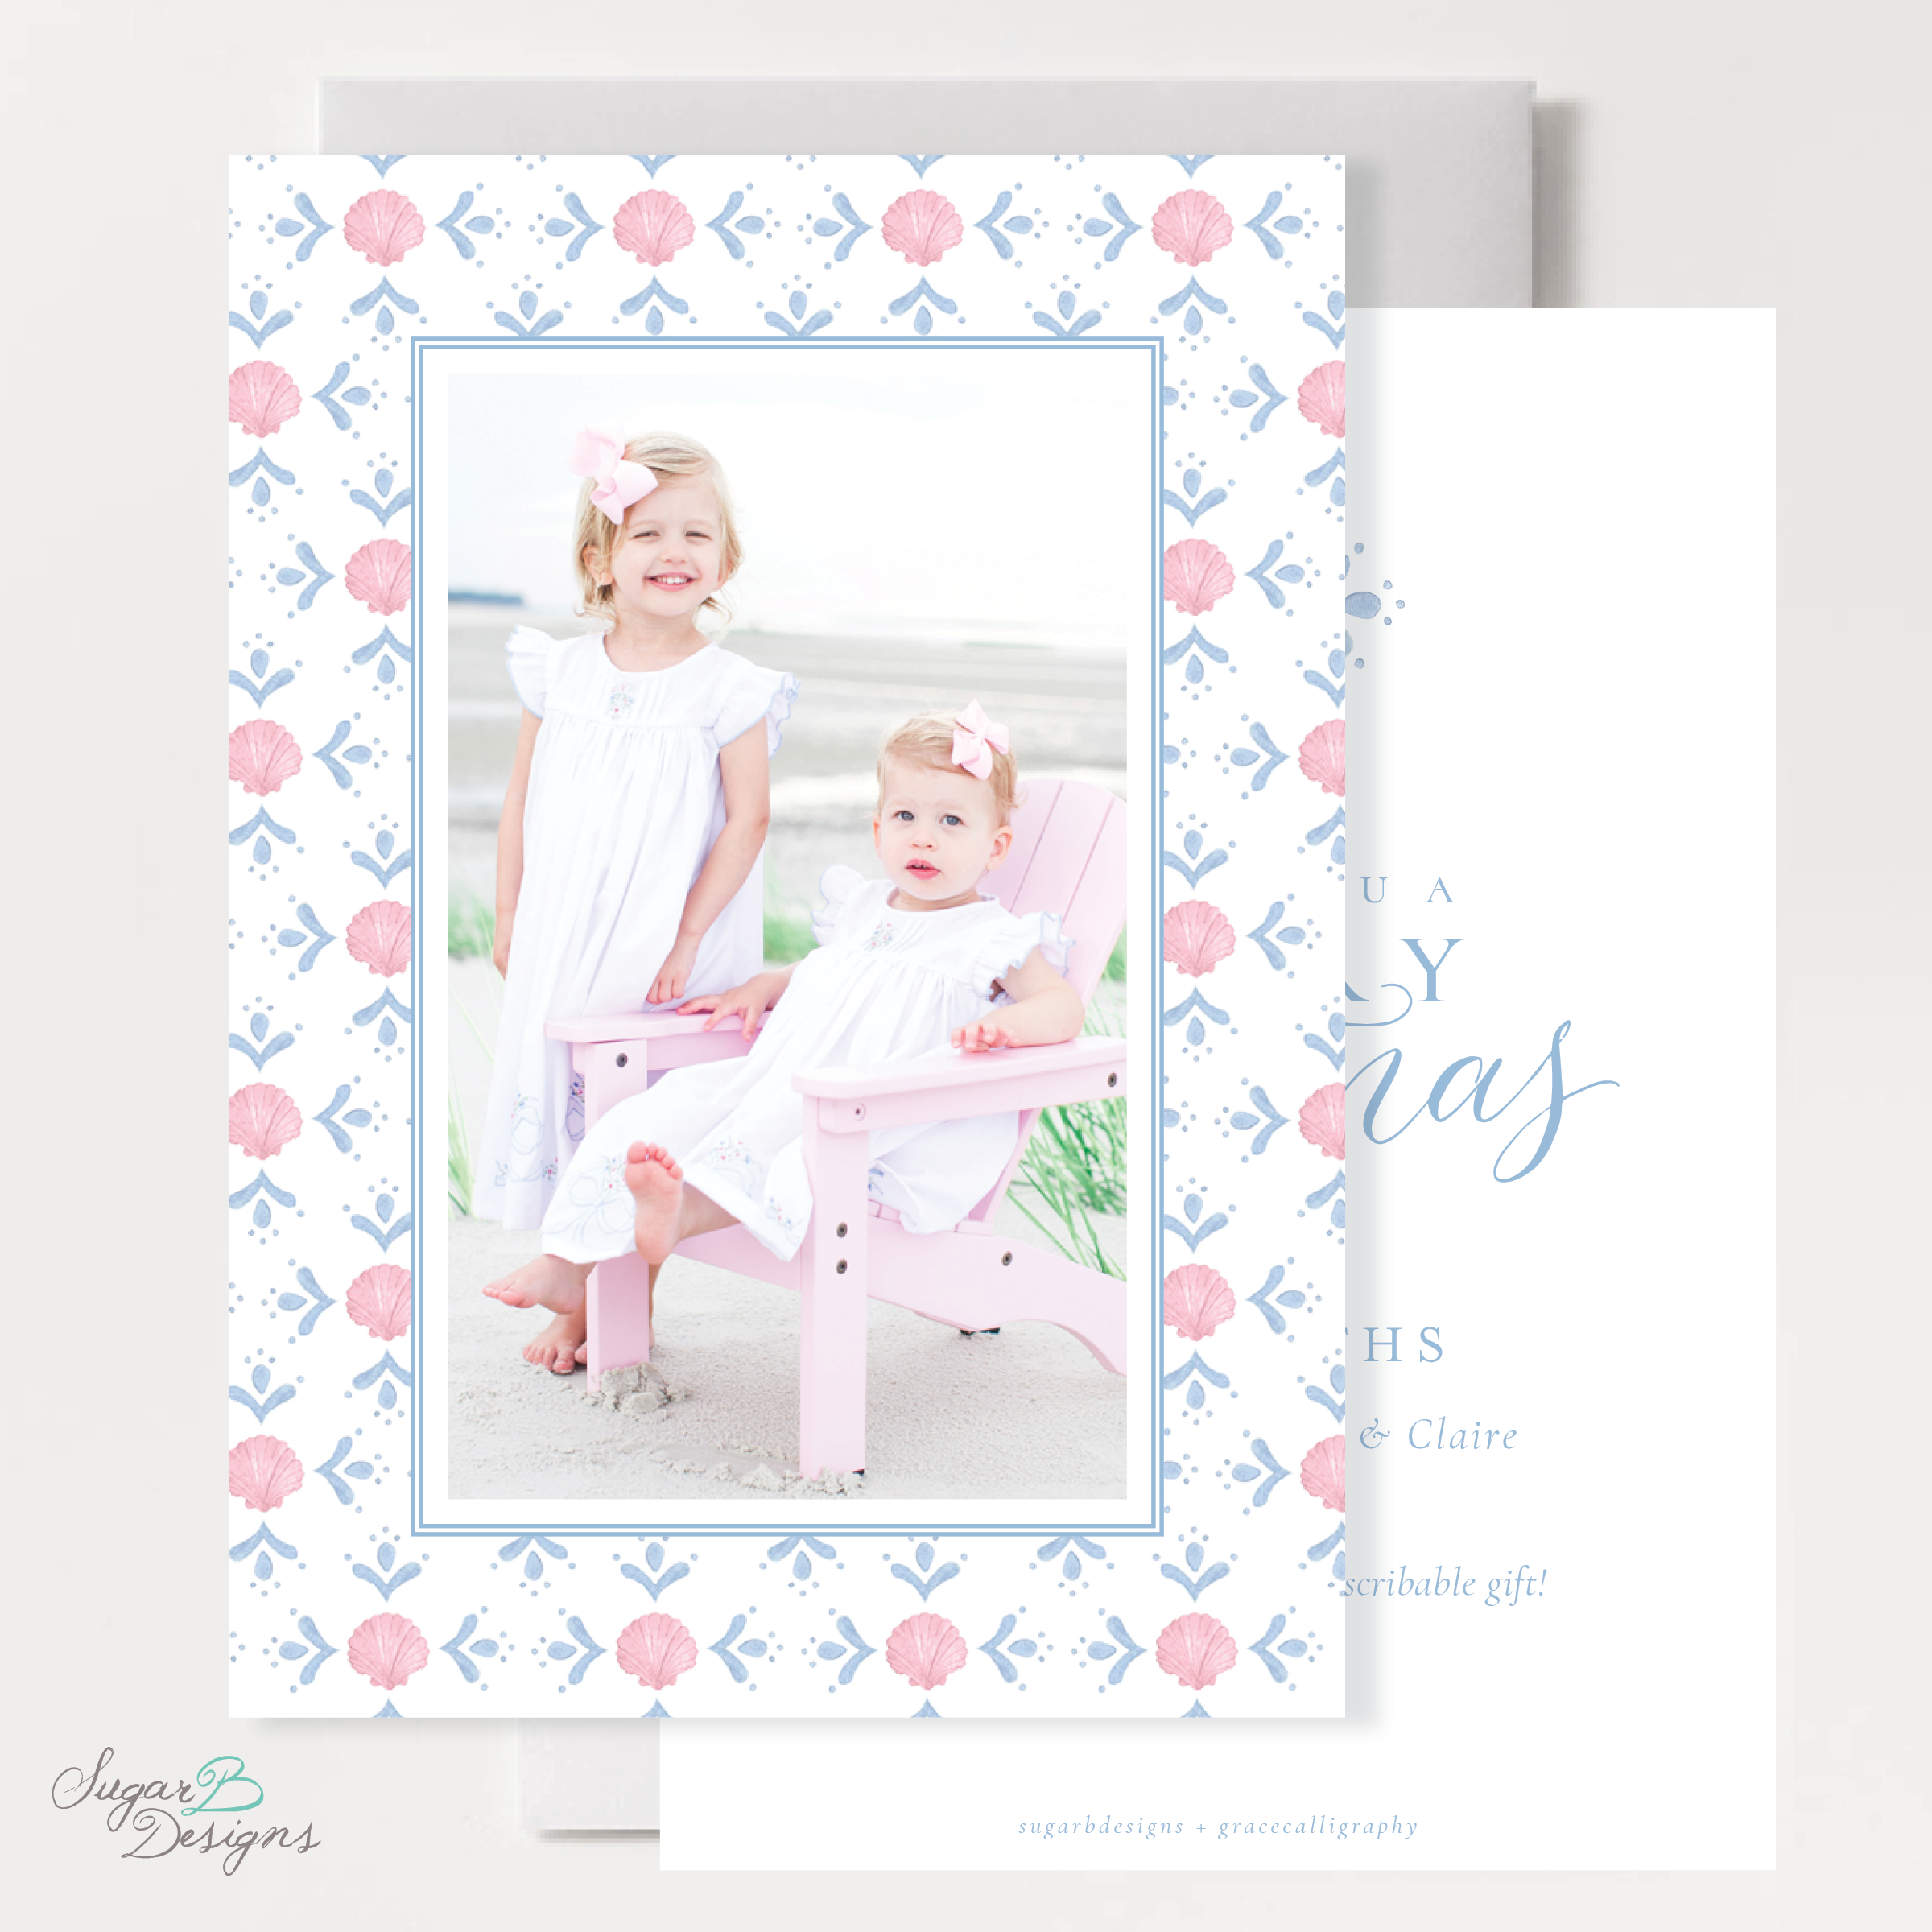 Shell Celebration Pink Christmas Card front + back by Sugar B Designs.png